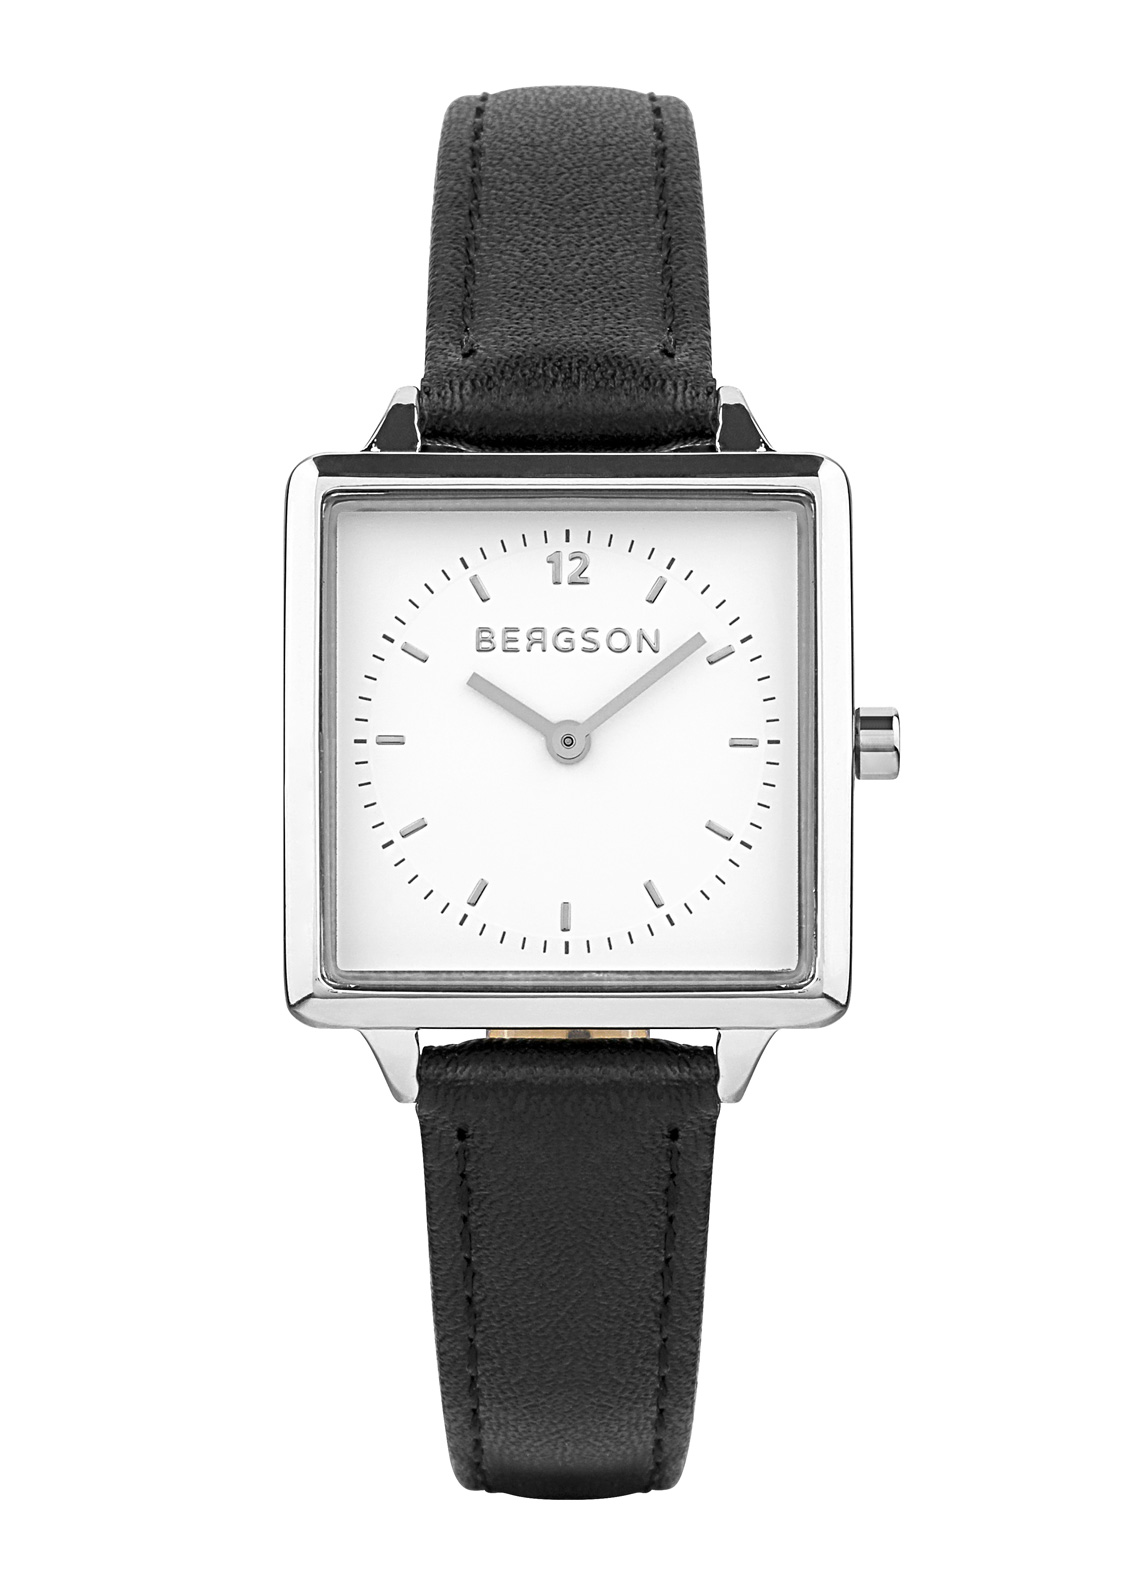 bergson_watches_BGW8192L24.jpg